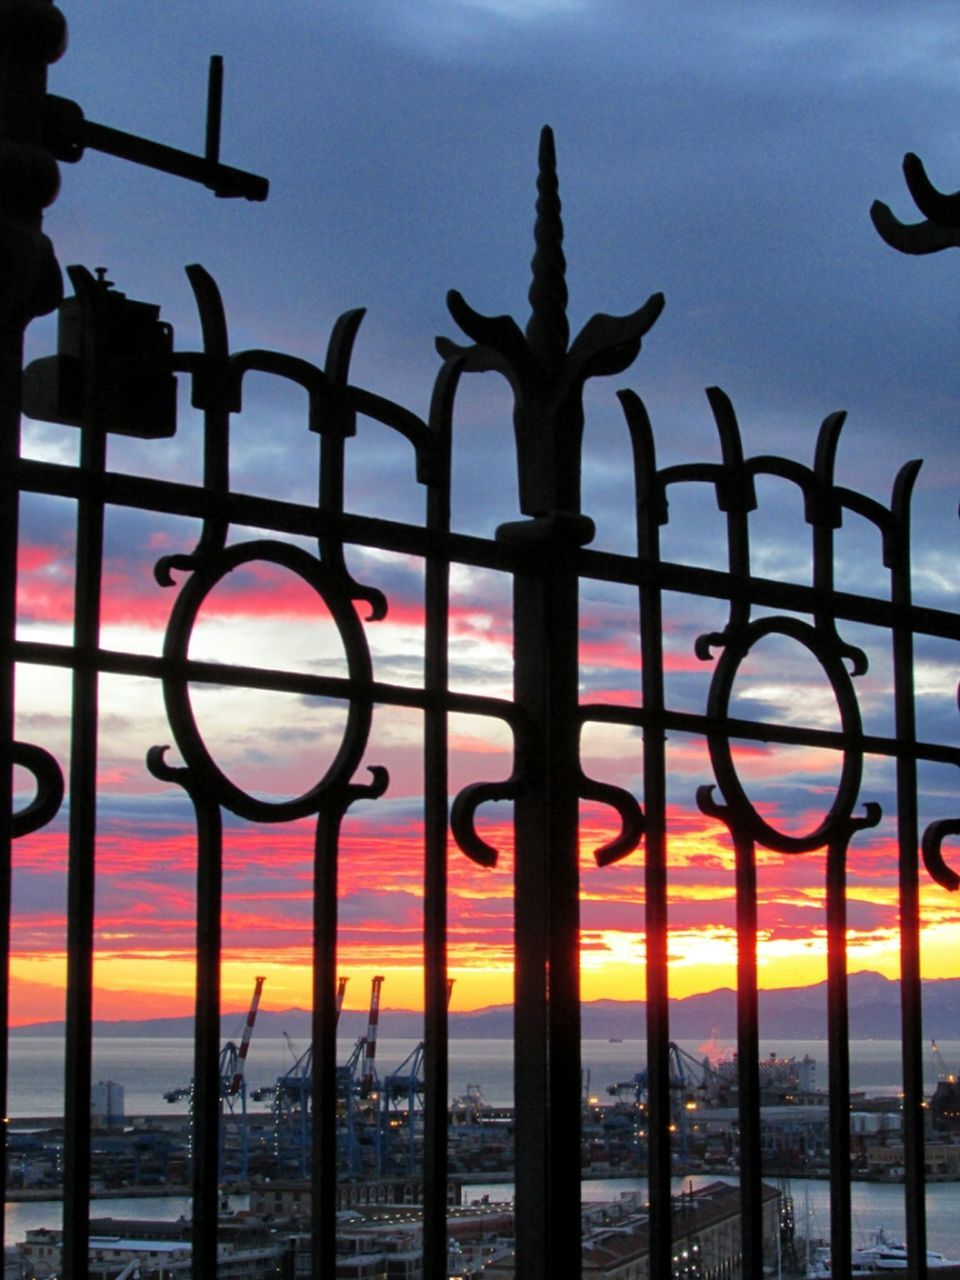 metal, sunset, gate, sky, outdoors, no people, wrought iron, silhouette, day, close-up, nature, water